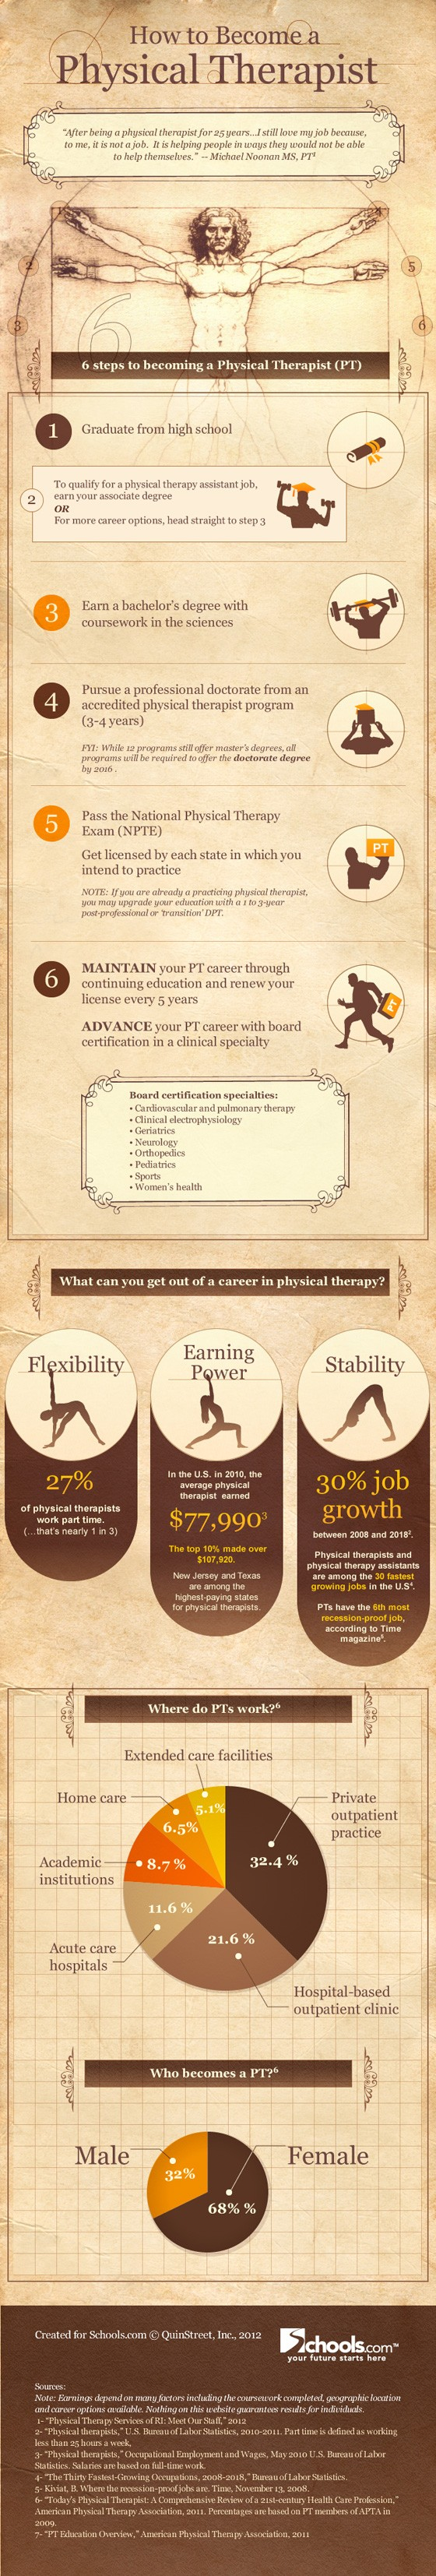 Infographic showing information related to a career in physical therapy.